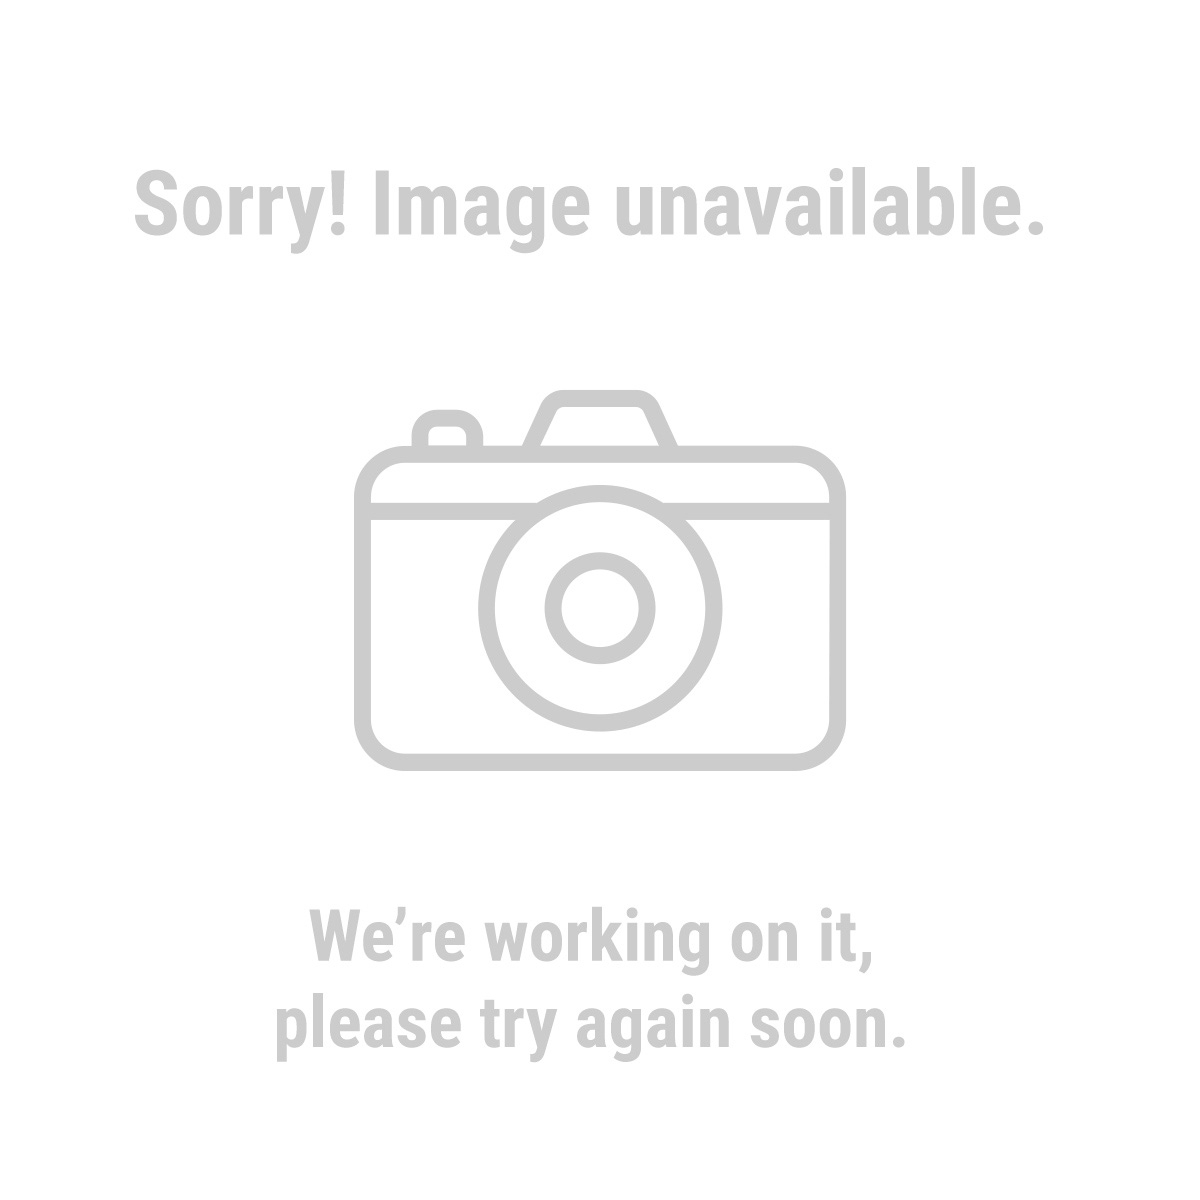 Chicago Electric Welding Systems 68886 180 Amp MIG/Flux Wire Feed Welder